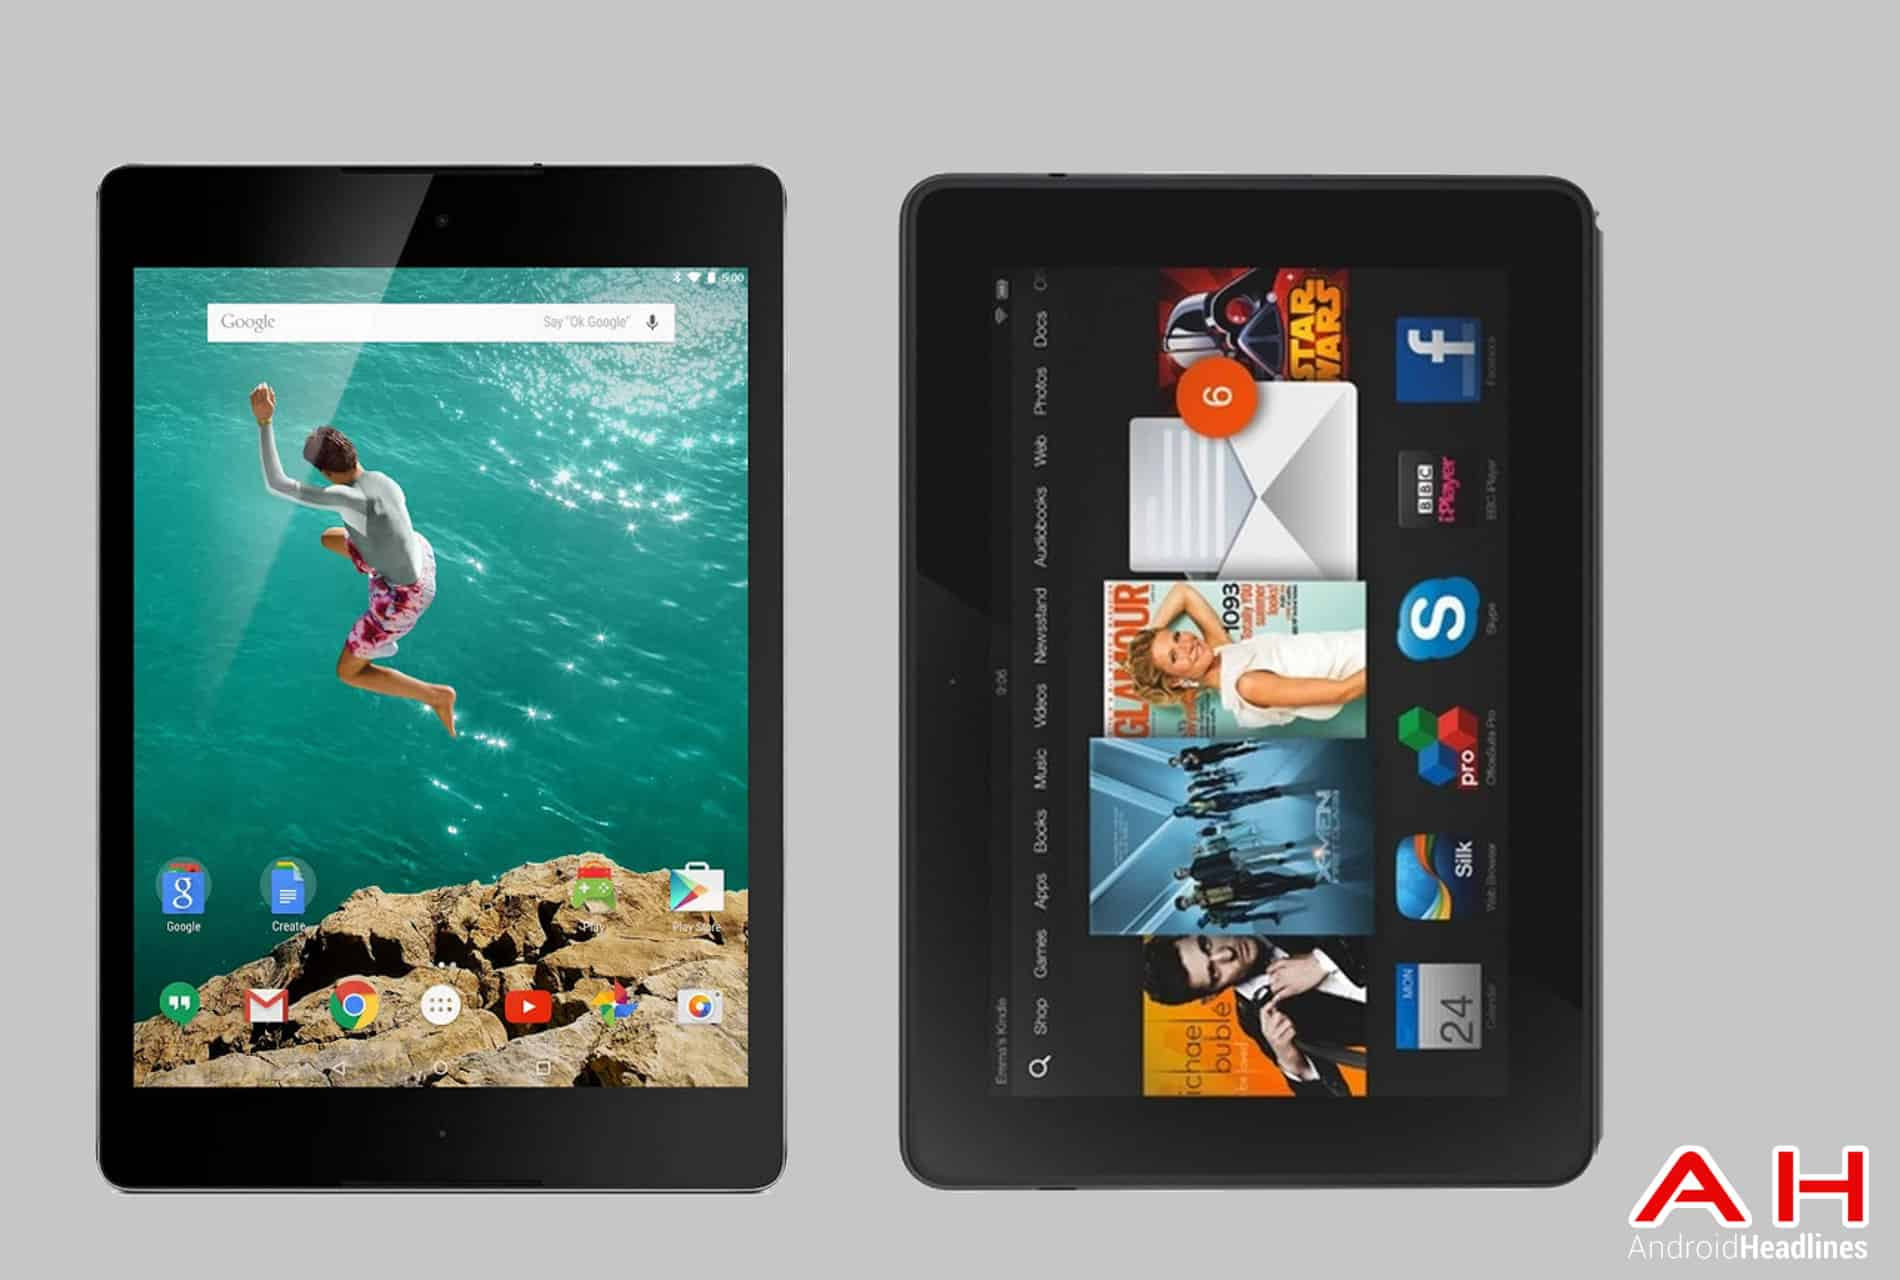 Nexus 9 vs Kindle Fire HDX 8.9 cam AH